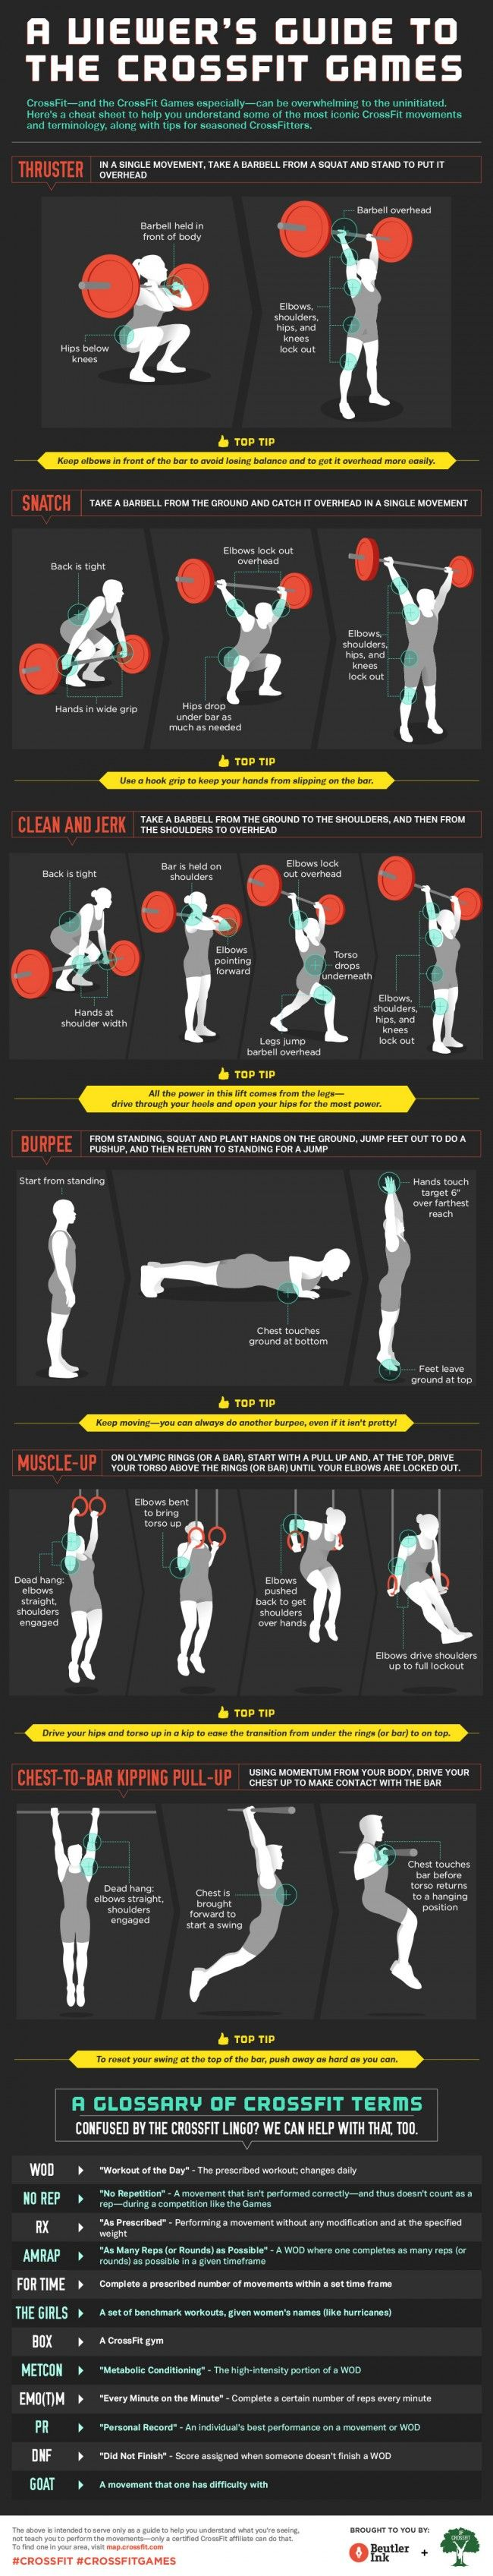 Blonyx - #Infographic - 'A 'non-crossfitters' Guide to Crossfit'